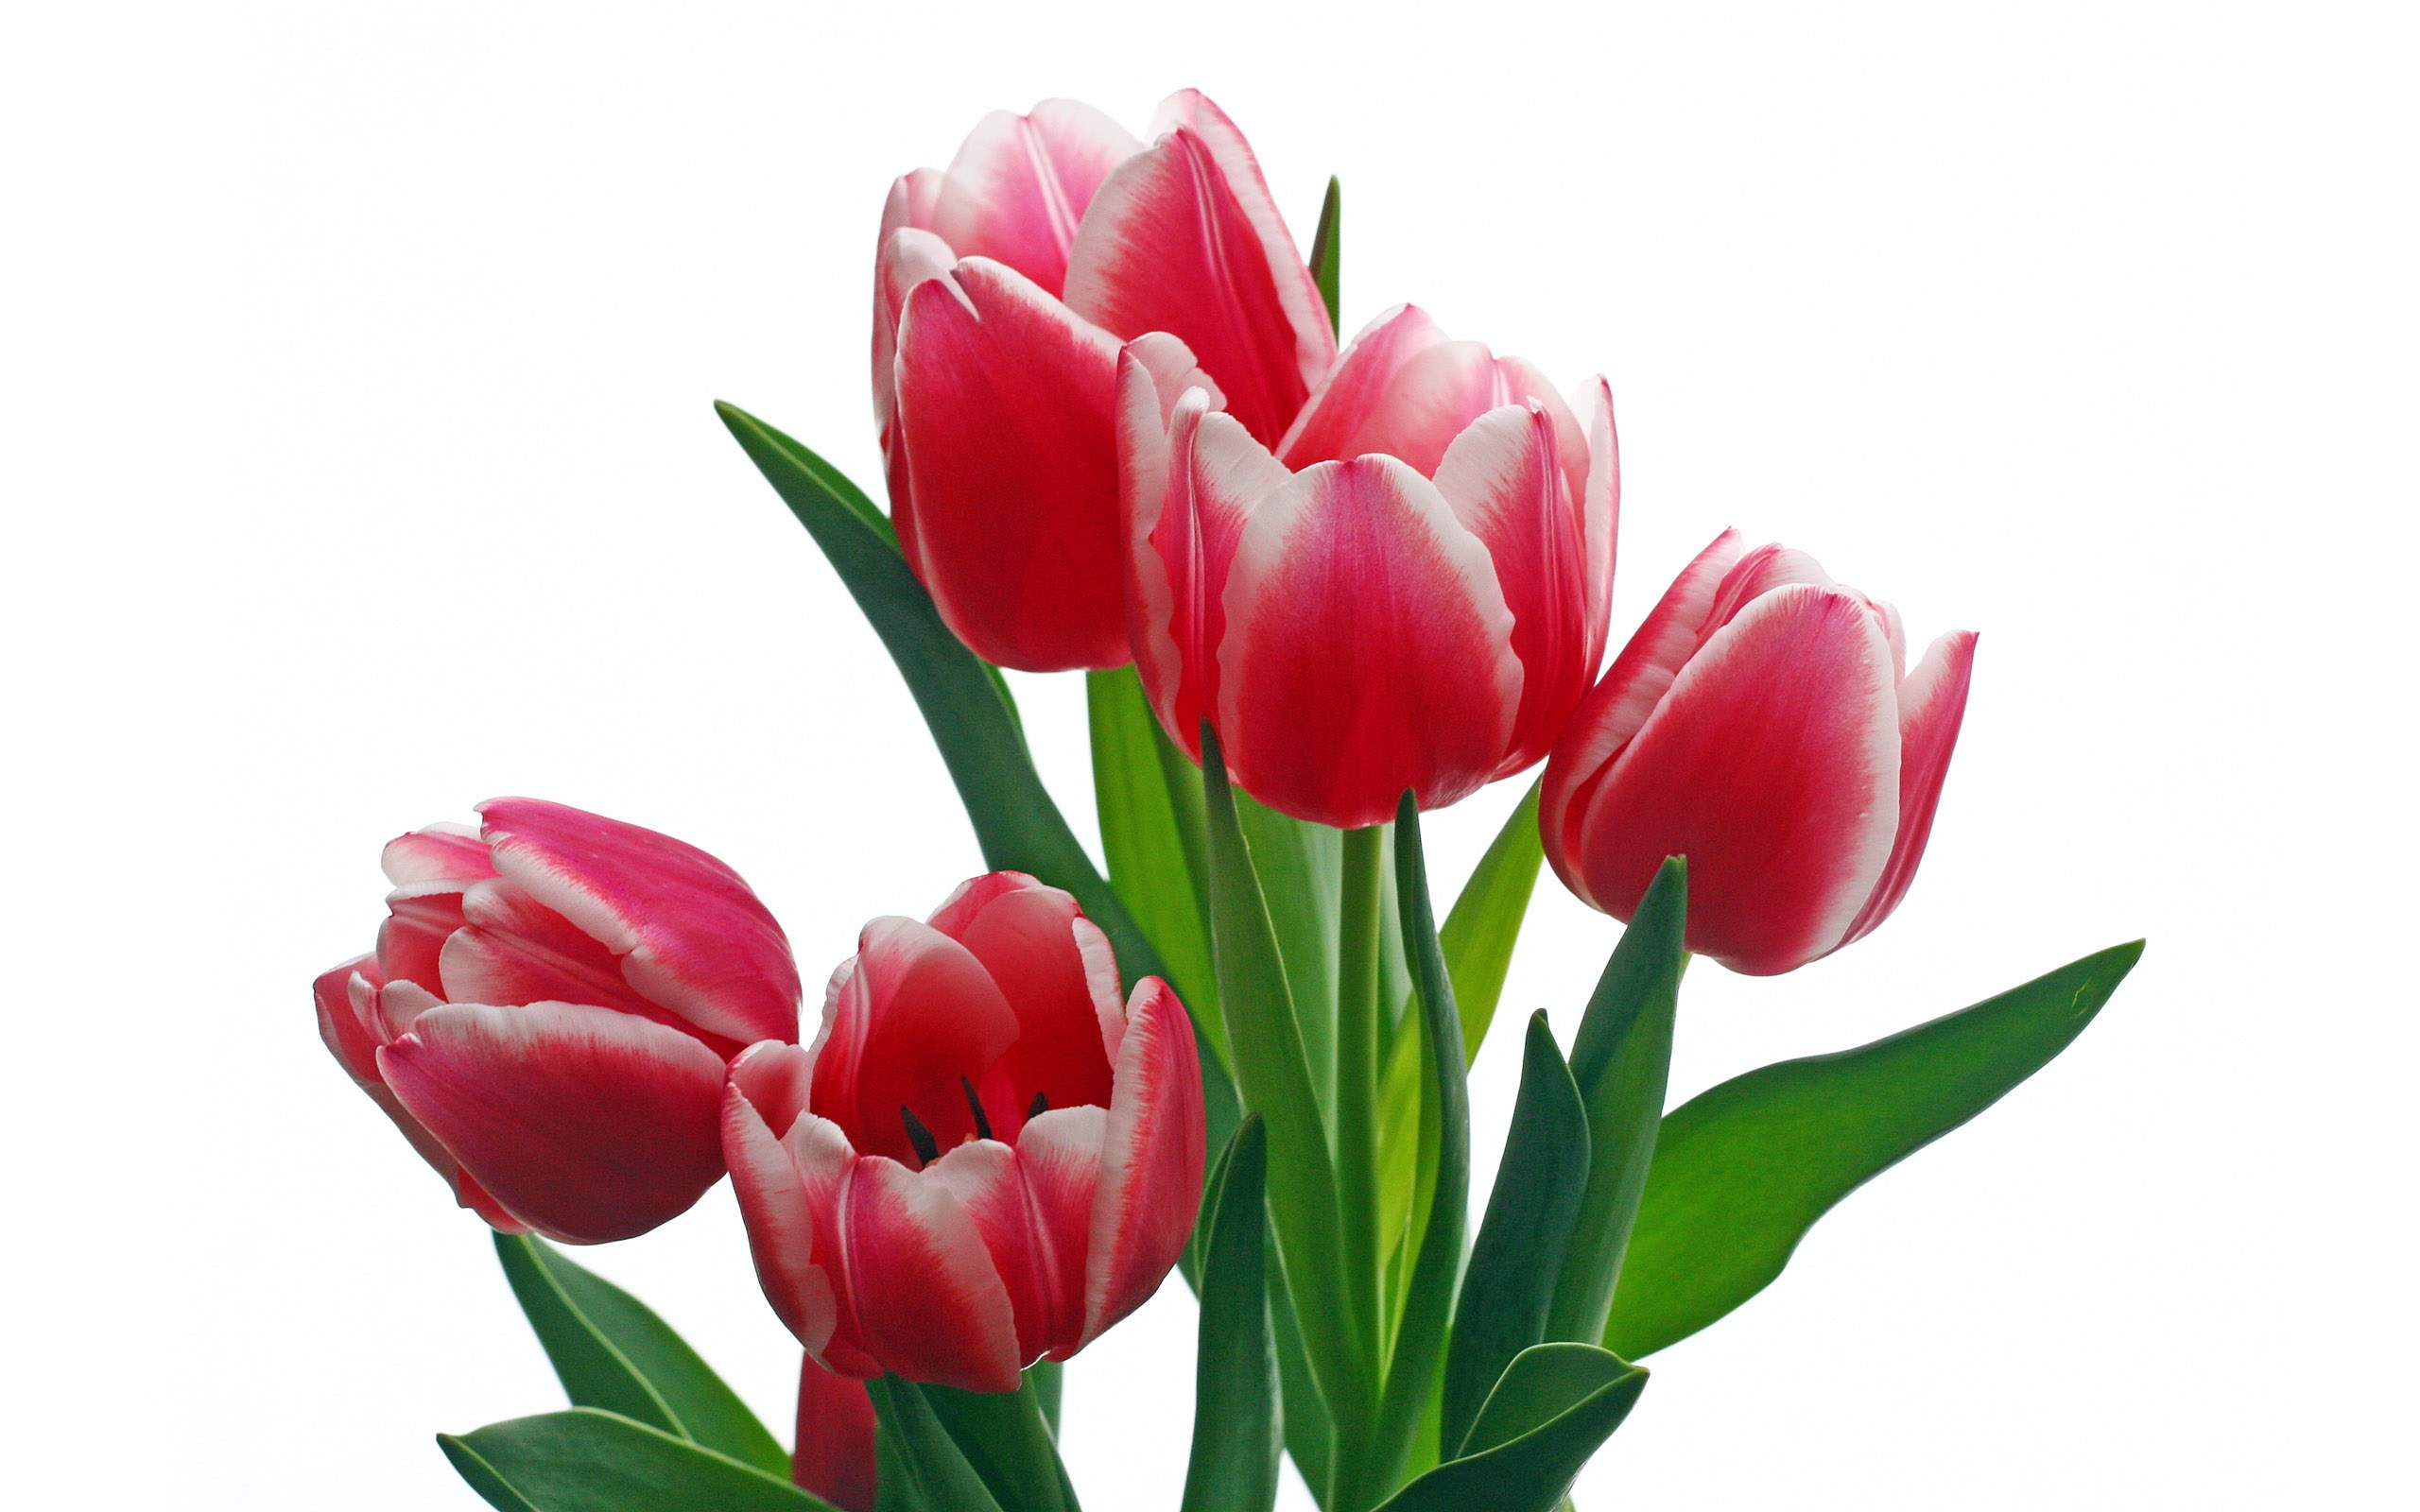 Tulip - Why rose is the most famous flower?